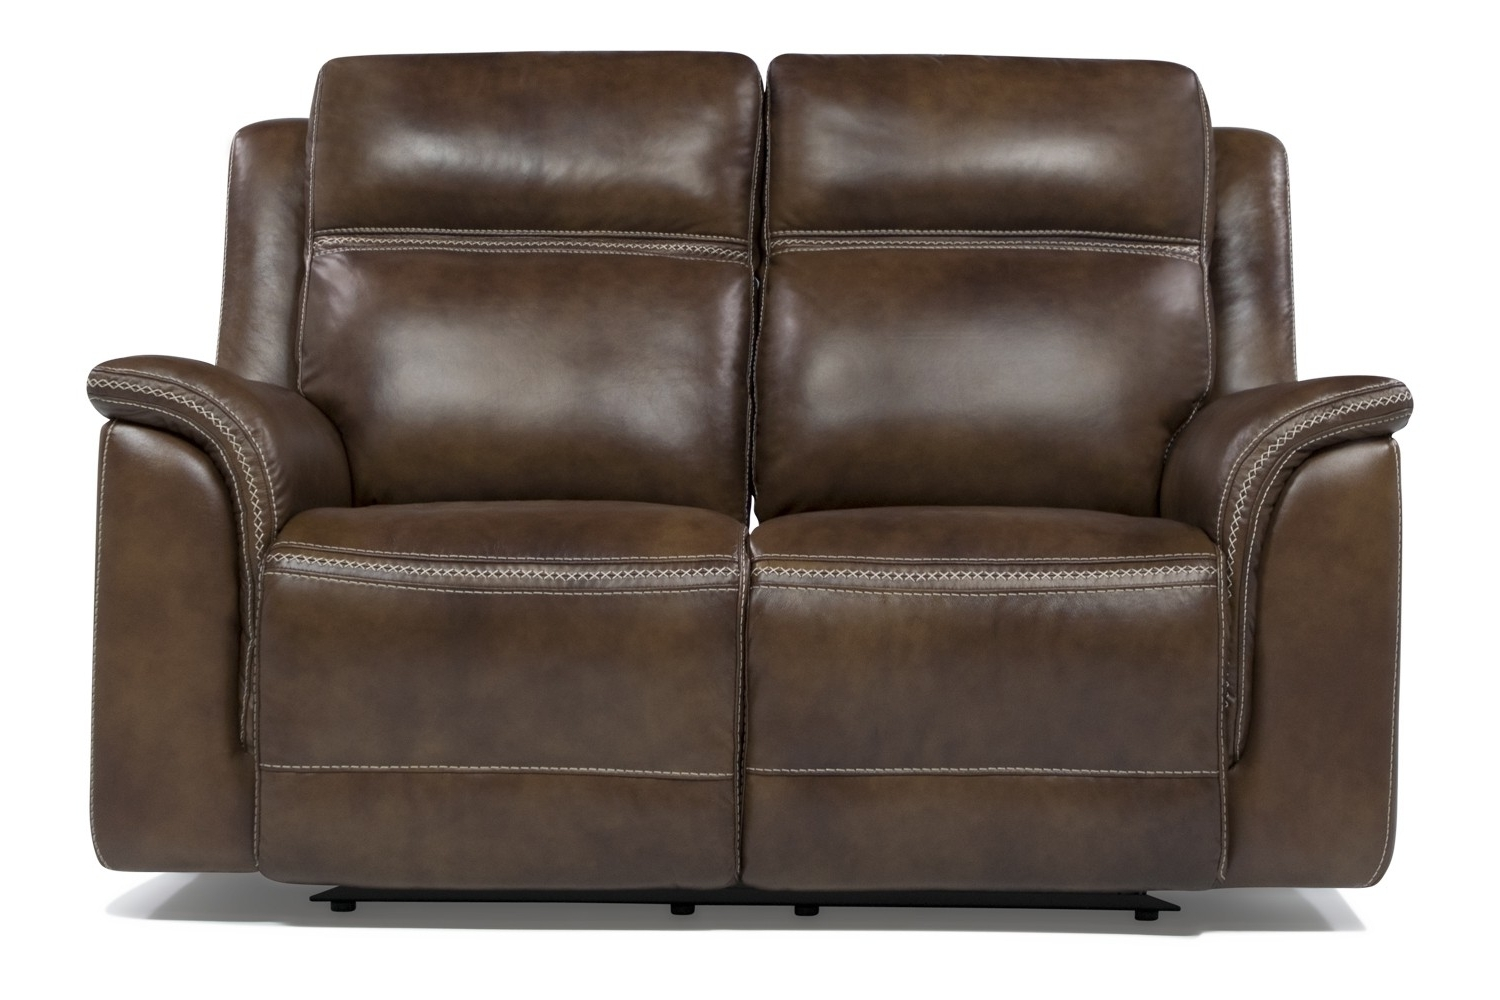 Everett Wa Sectional Sofas Pertaining To Well Known Living Room Furniture (View 8 of 20)